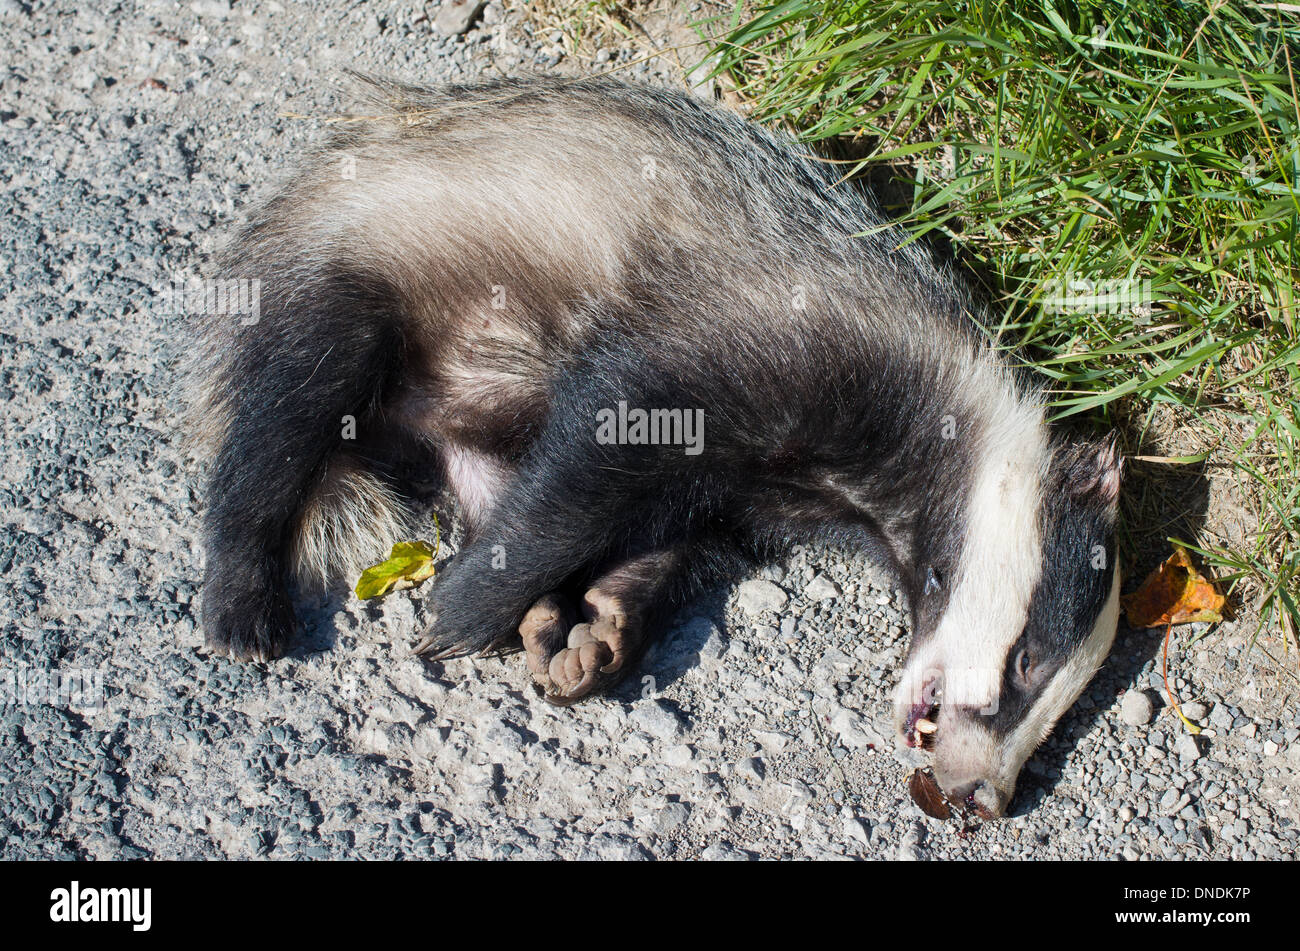 Dead Badger lying at side of road kerb.  Possibly killed by car Stock Photo